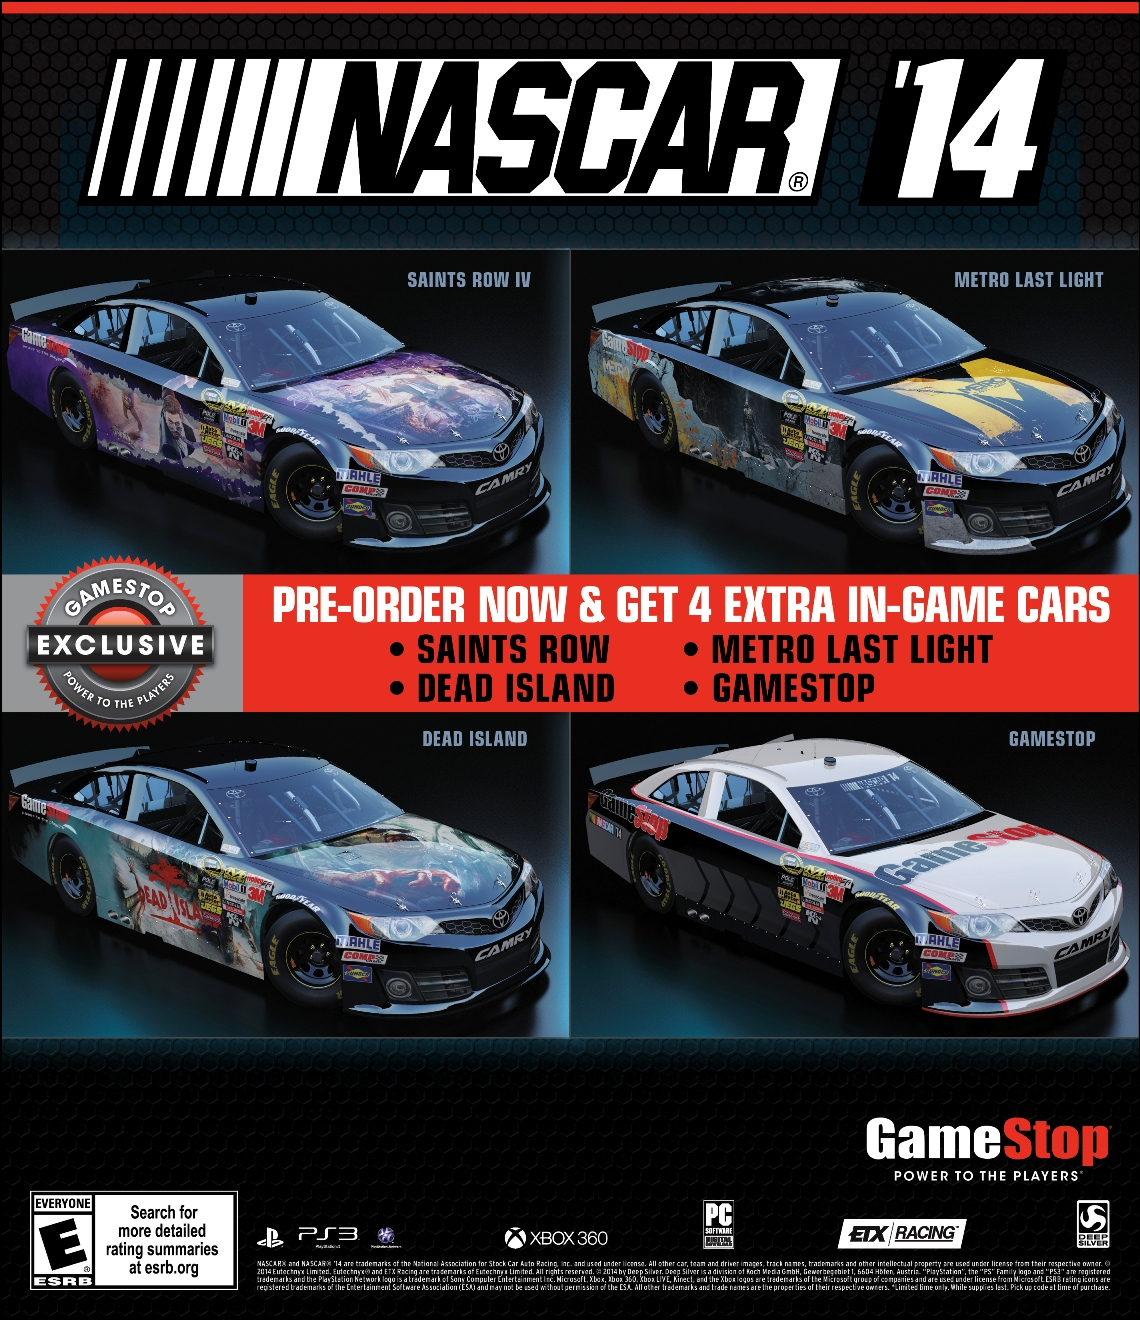 nascar 14 offers fans the most complete nascar experience yet